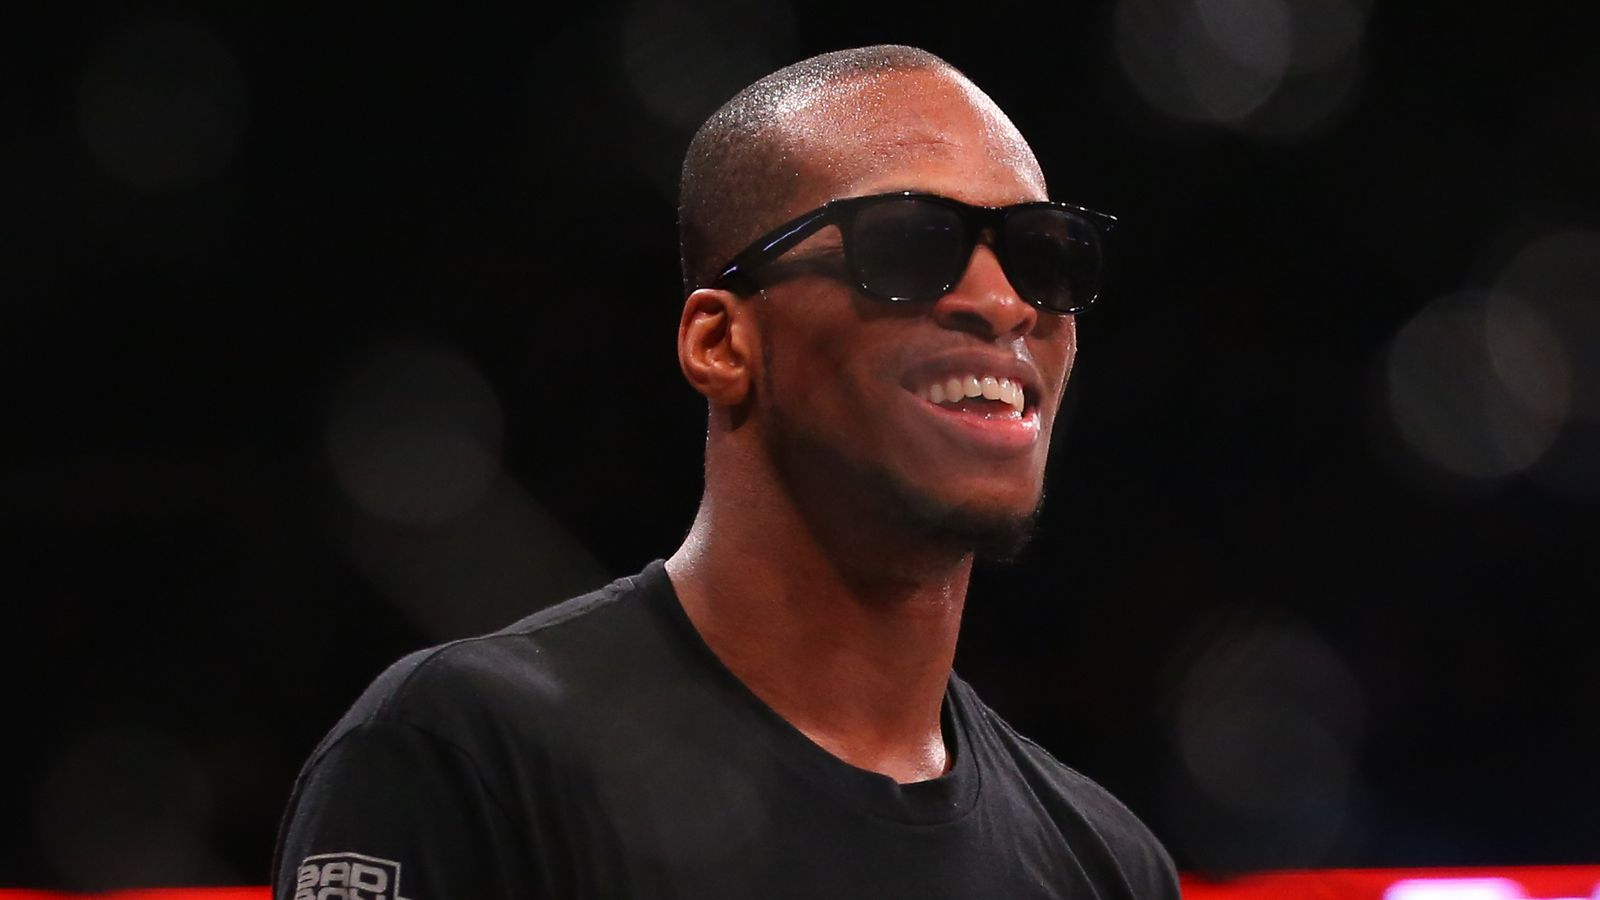 Bellator star Michael 'Venom' Page wants to revolutionize the sport